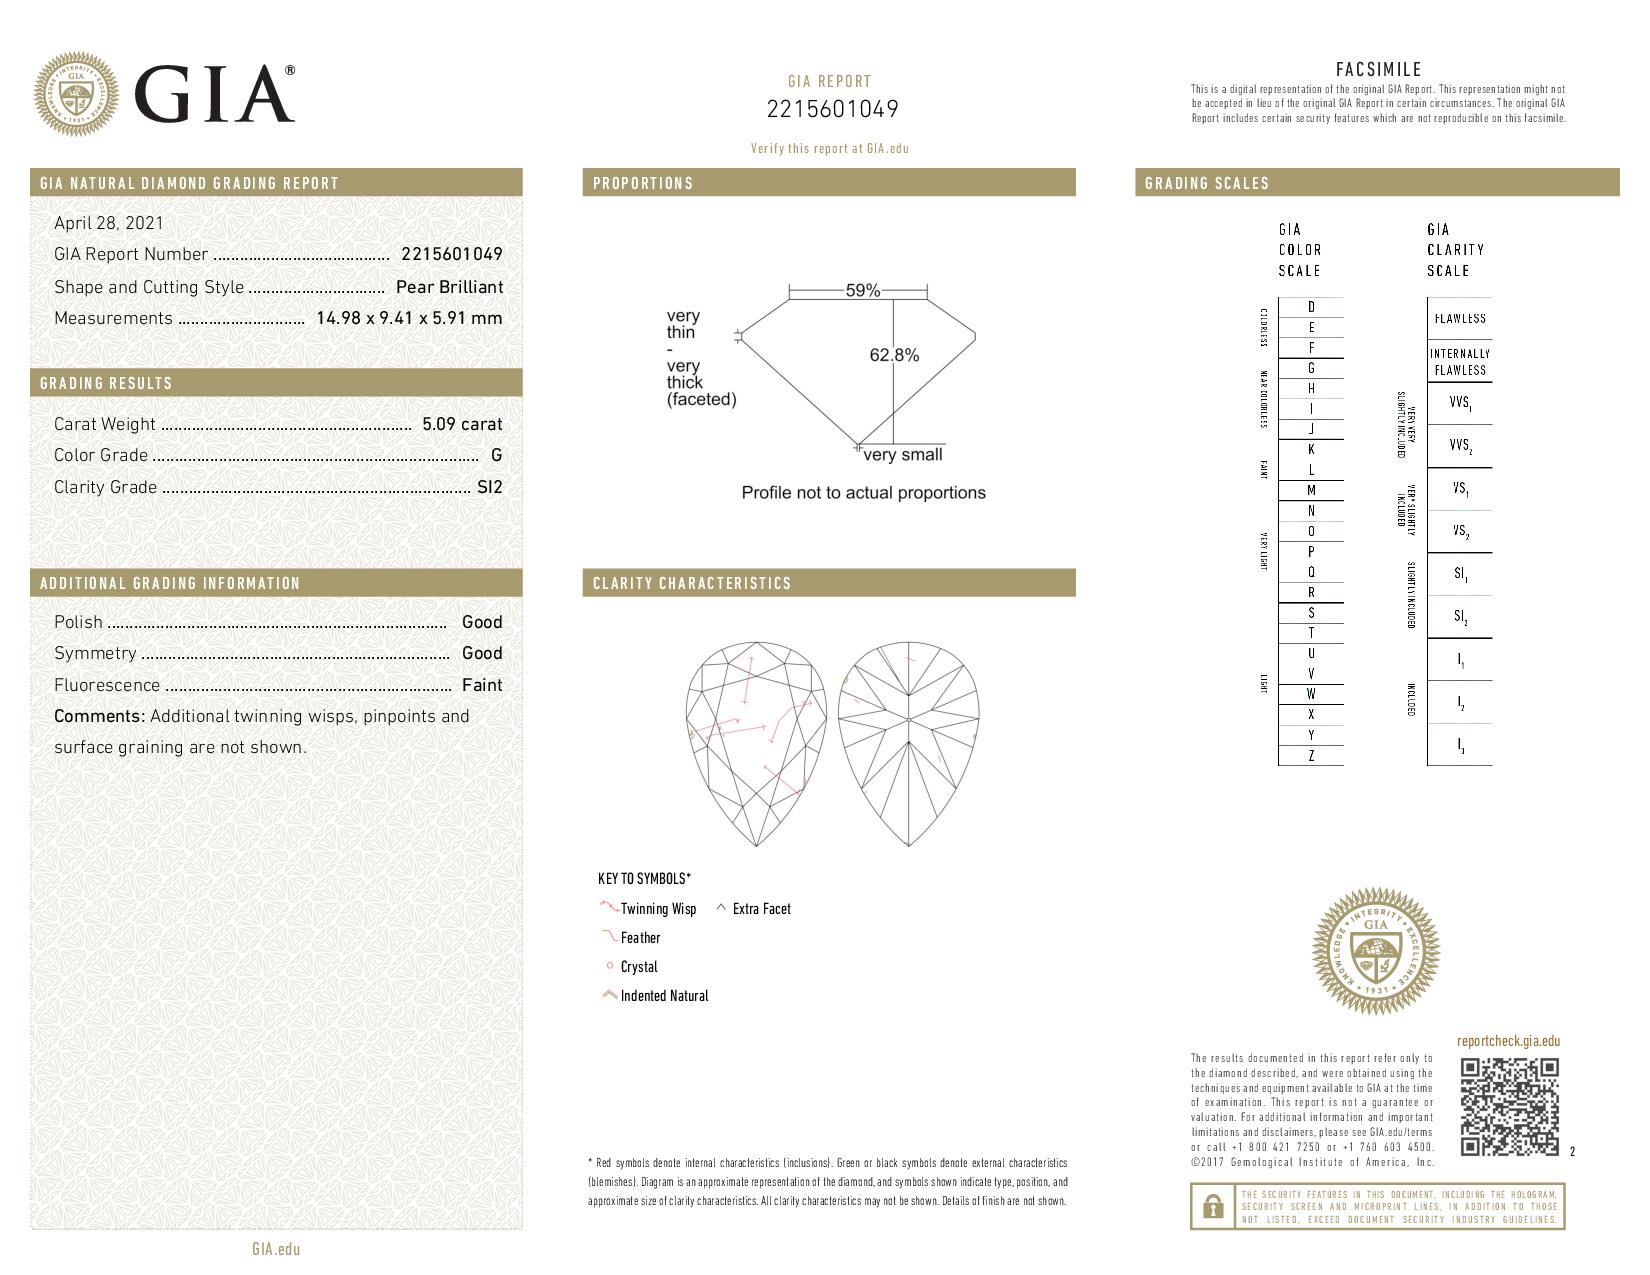 This is a 5.09 carat pear shape, G color, SI2 clarity natural diamond accompanied by a GIA grading report.